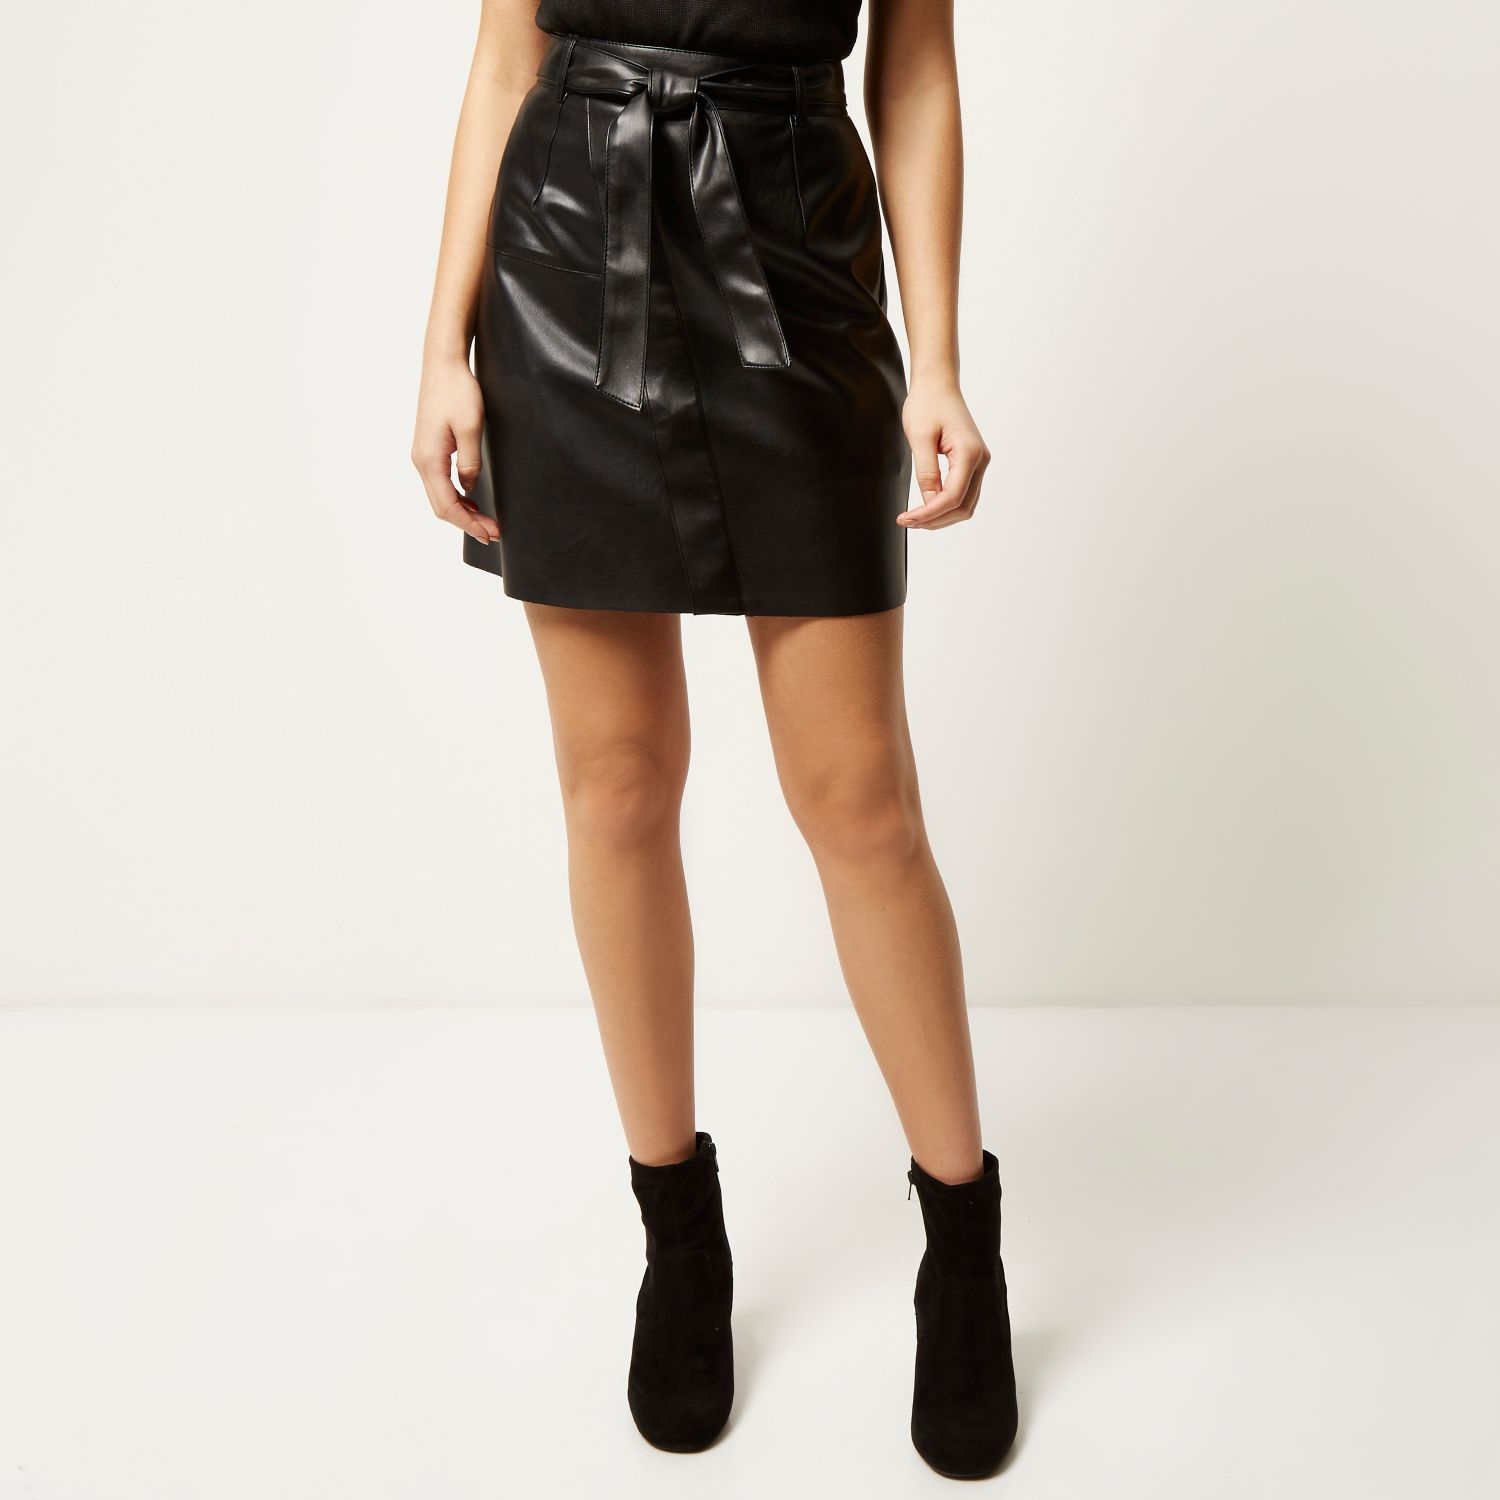 River island Black Leather-look Belted Mini Skirt in Black | Lyst